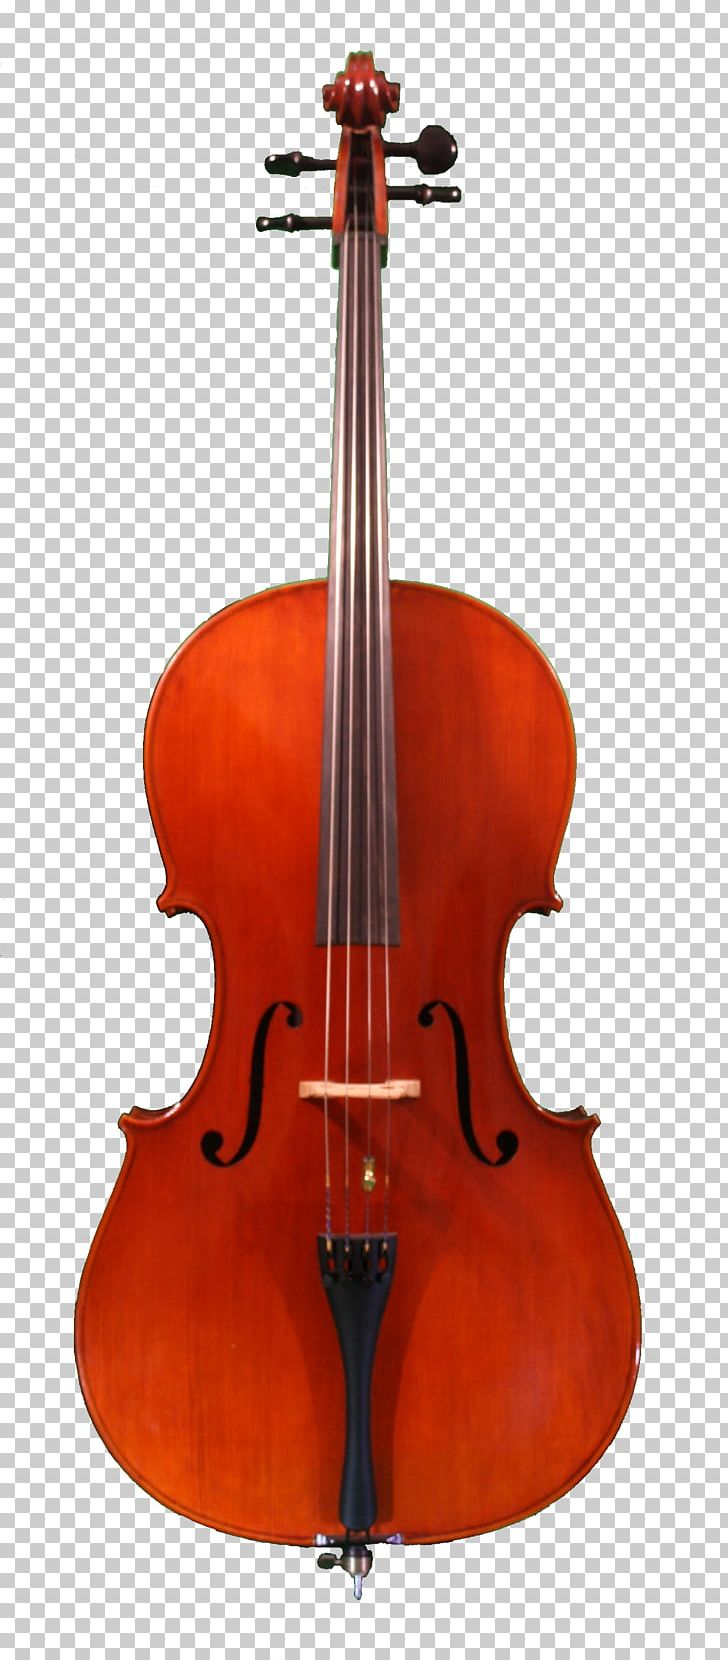 The glory of violin. Cello clipart viola